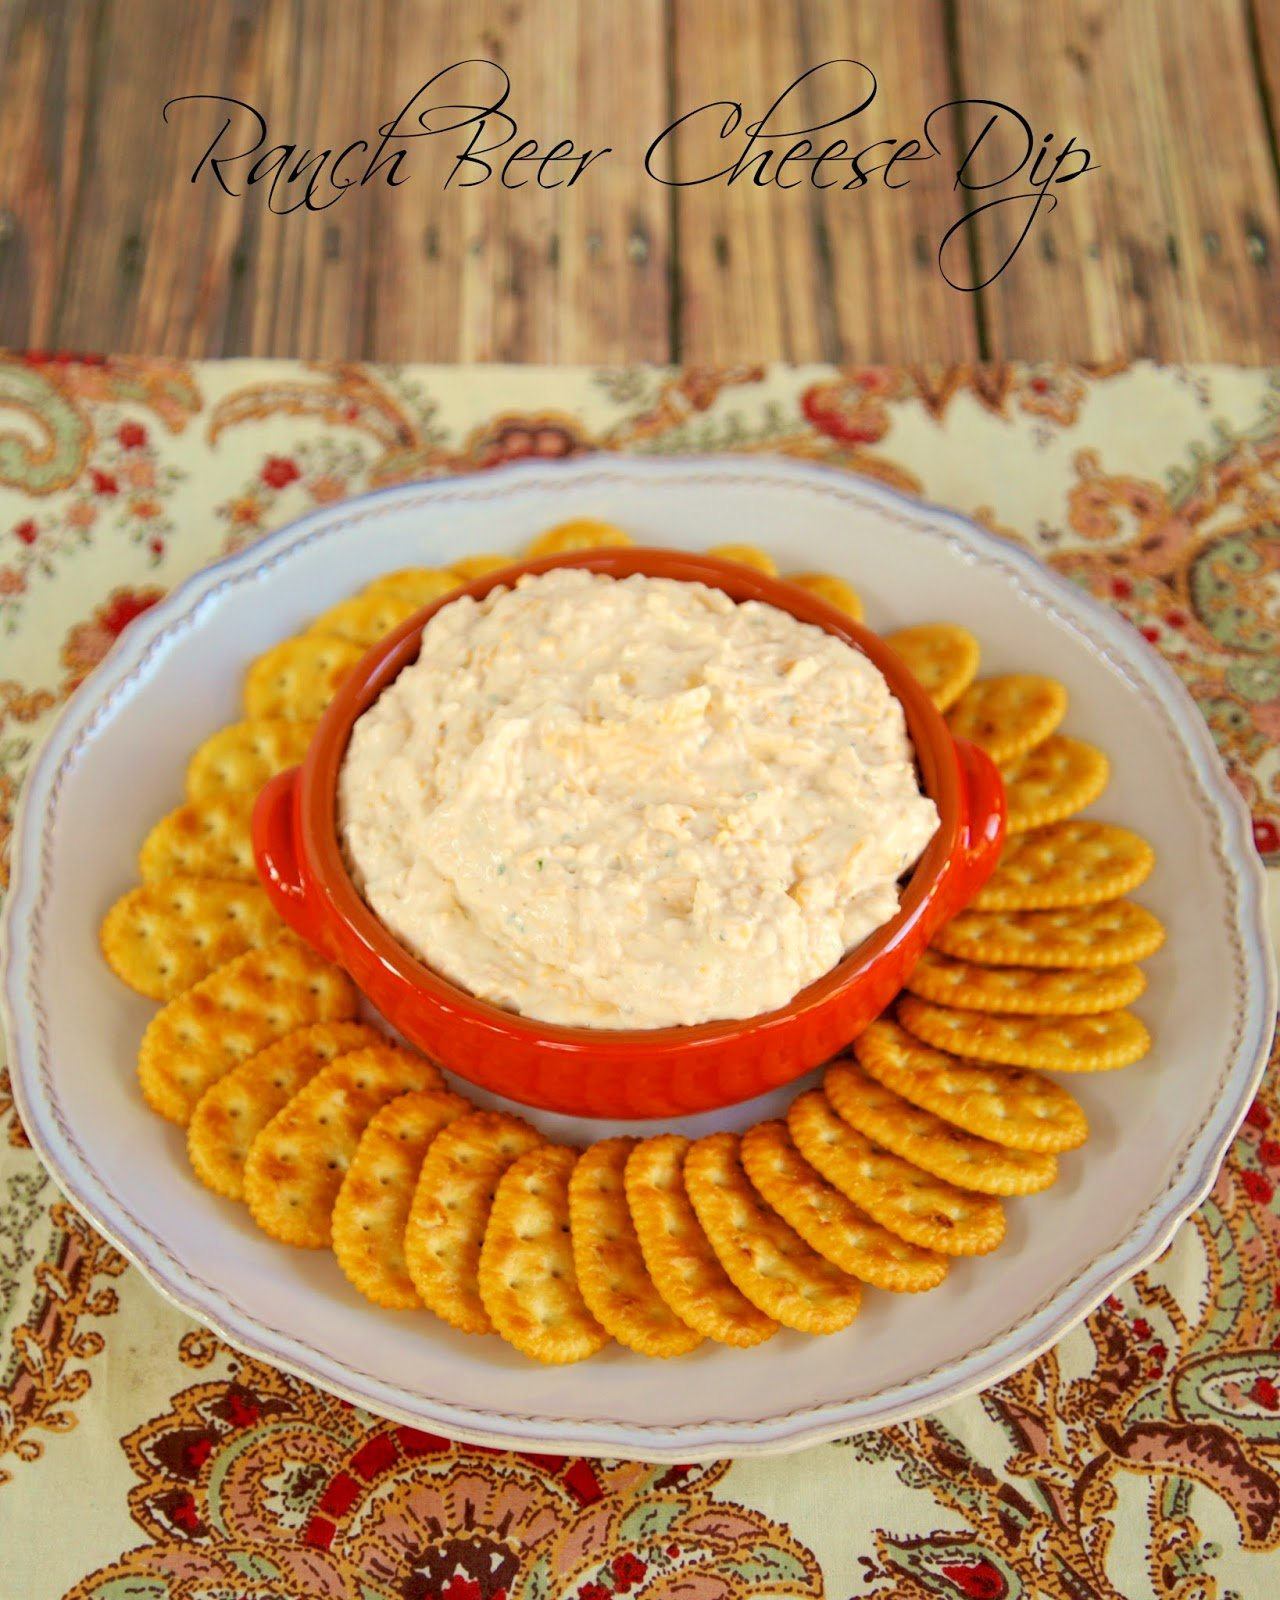 Ranch Beer Cheese Dip - great for parties! Beer, cheddar cheese, ranch dressing mix and cream cheese. Can make in advance and refrigerate until ready to serve. This is always a hit at parties!! #dip #cheese #appetizer